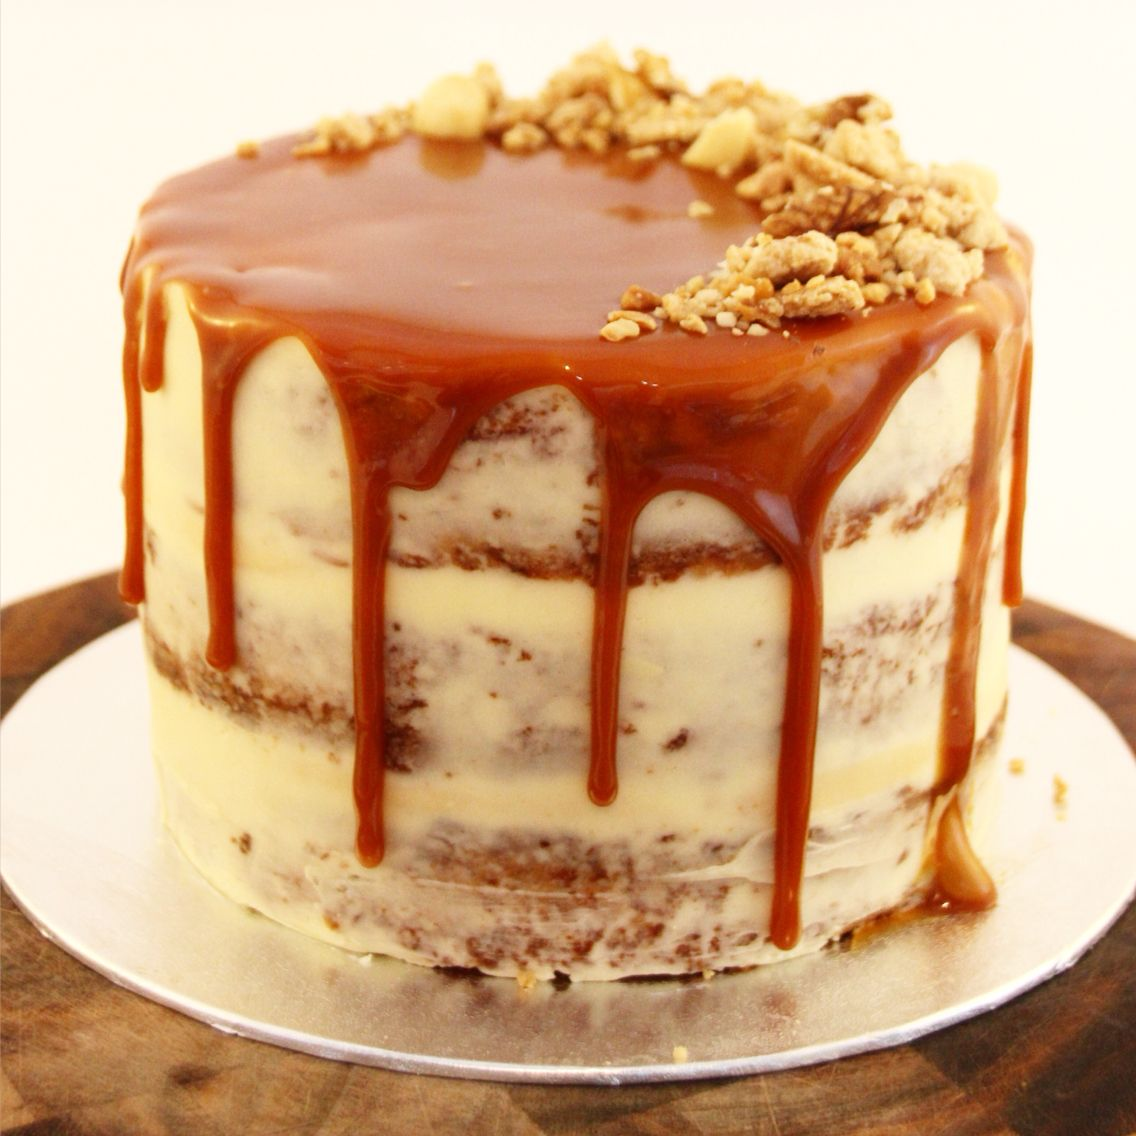 Carrot Cake Semi Naked With Caramel Buttercream Caramel Drizzle